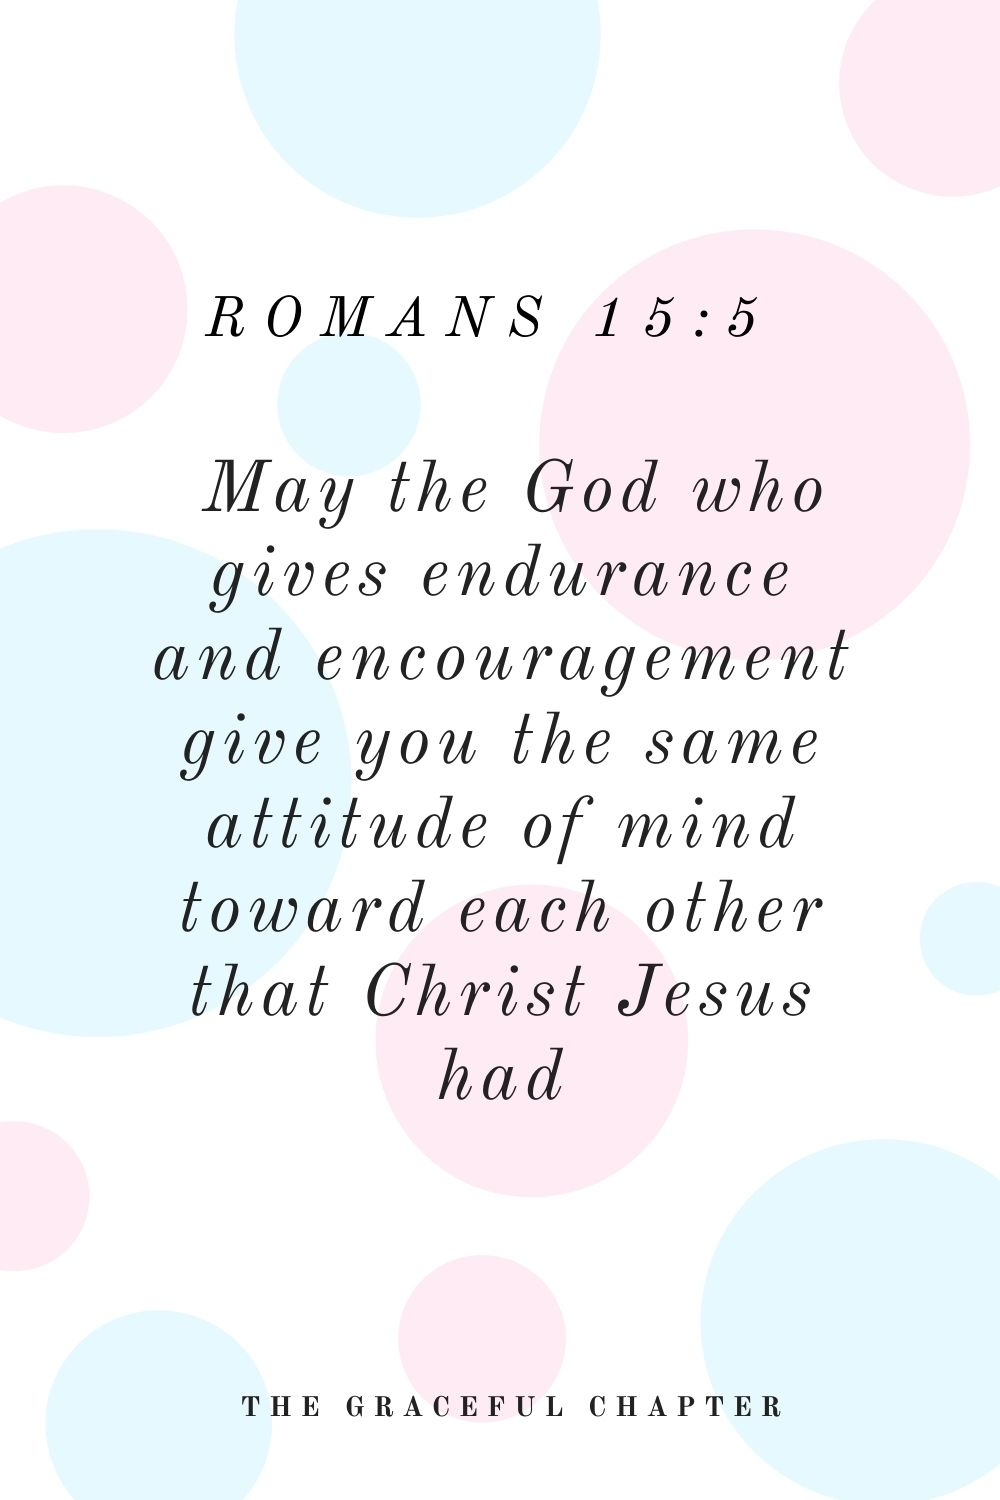 May the God who gives endurance and encouragement give you the same attitude of mind toward each other that Christ Jesus had, Romans 15:5